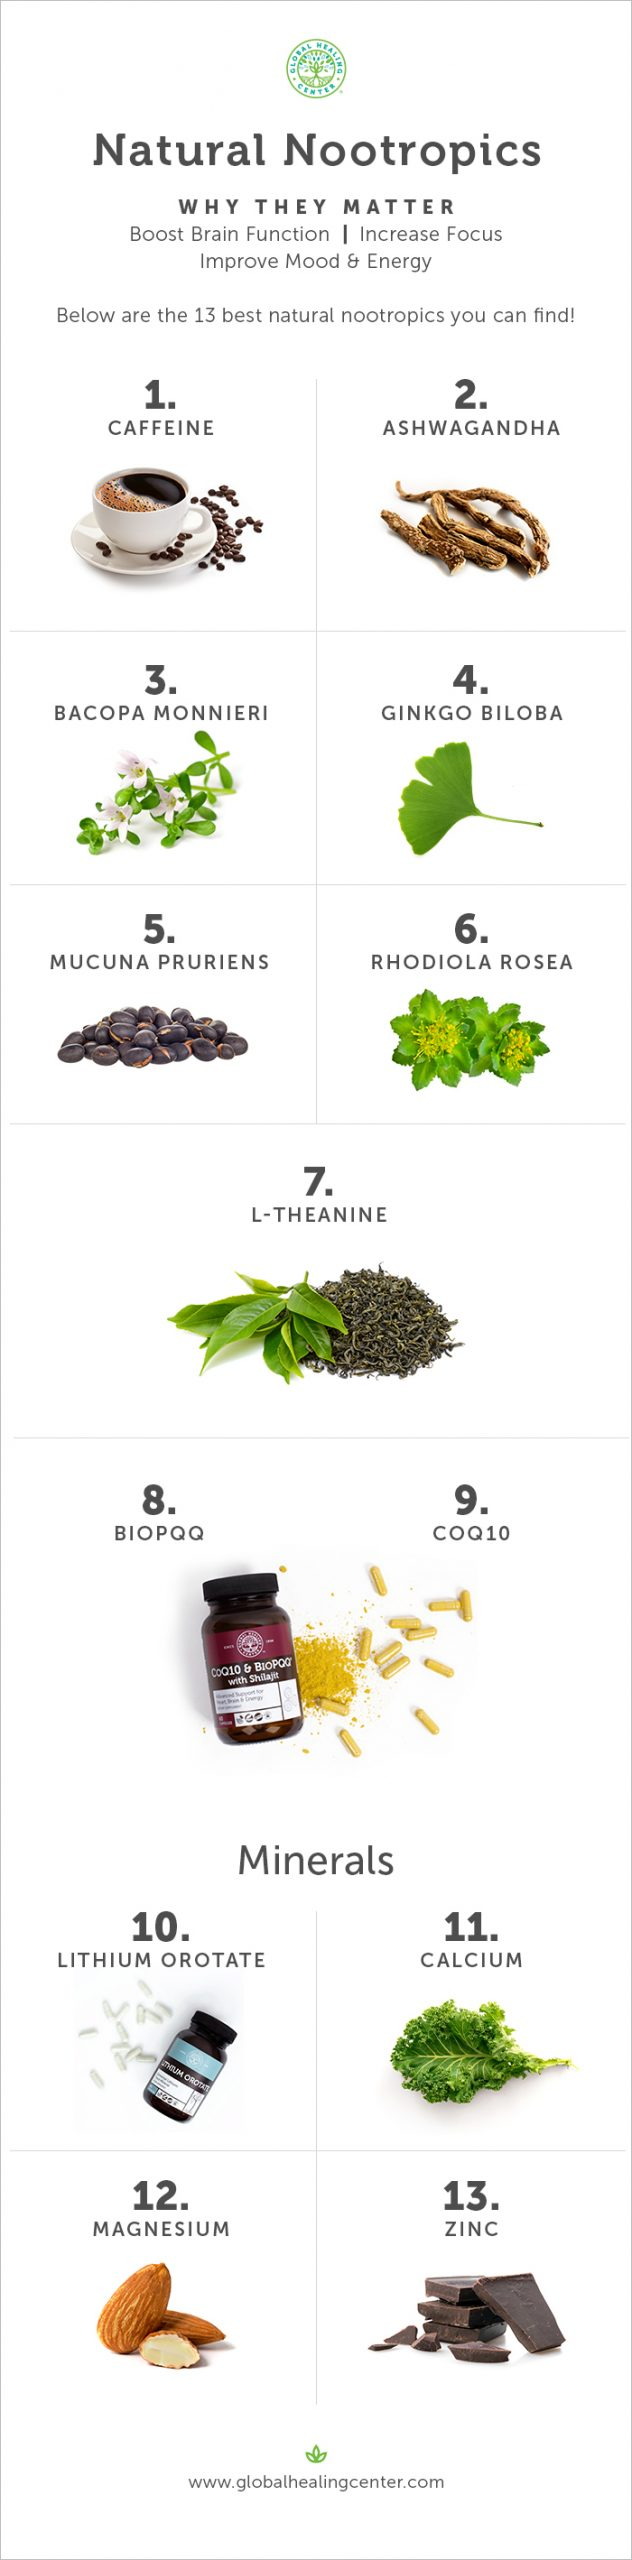 Learn the top 13 natural nootropics and why they matter.